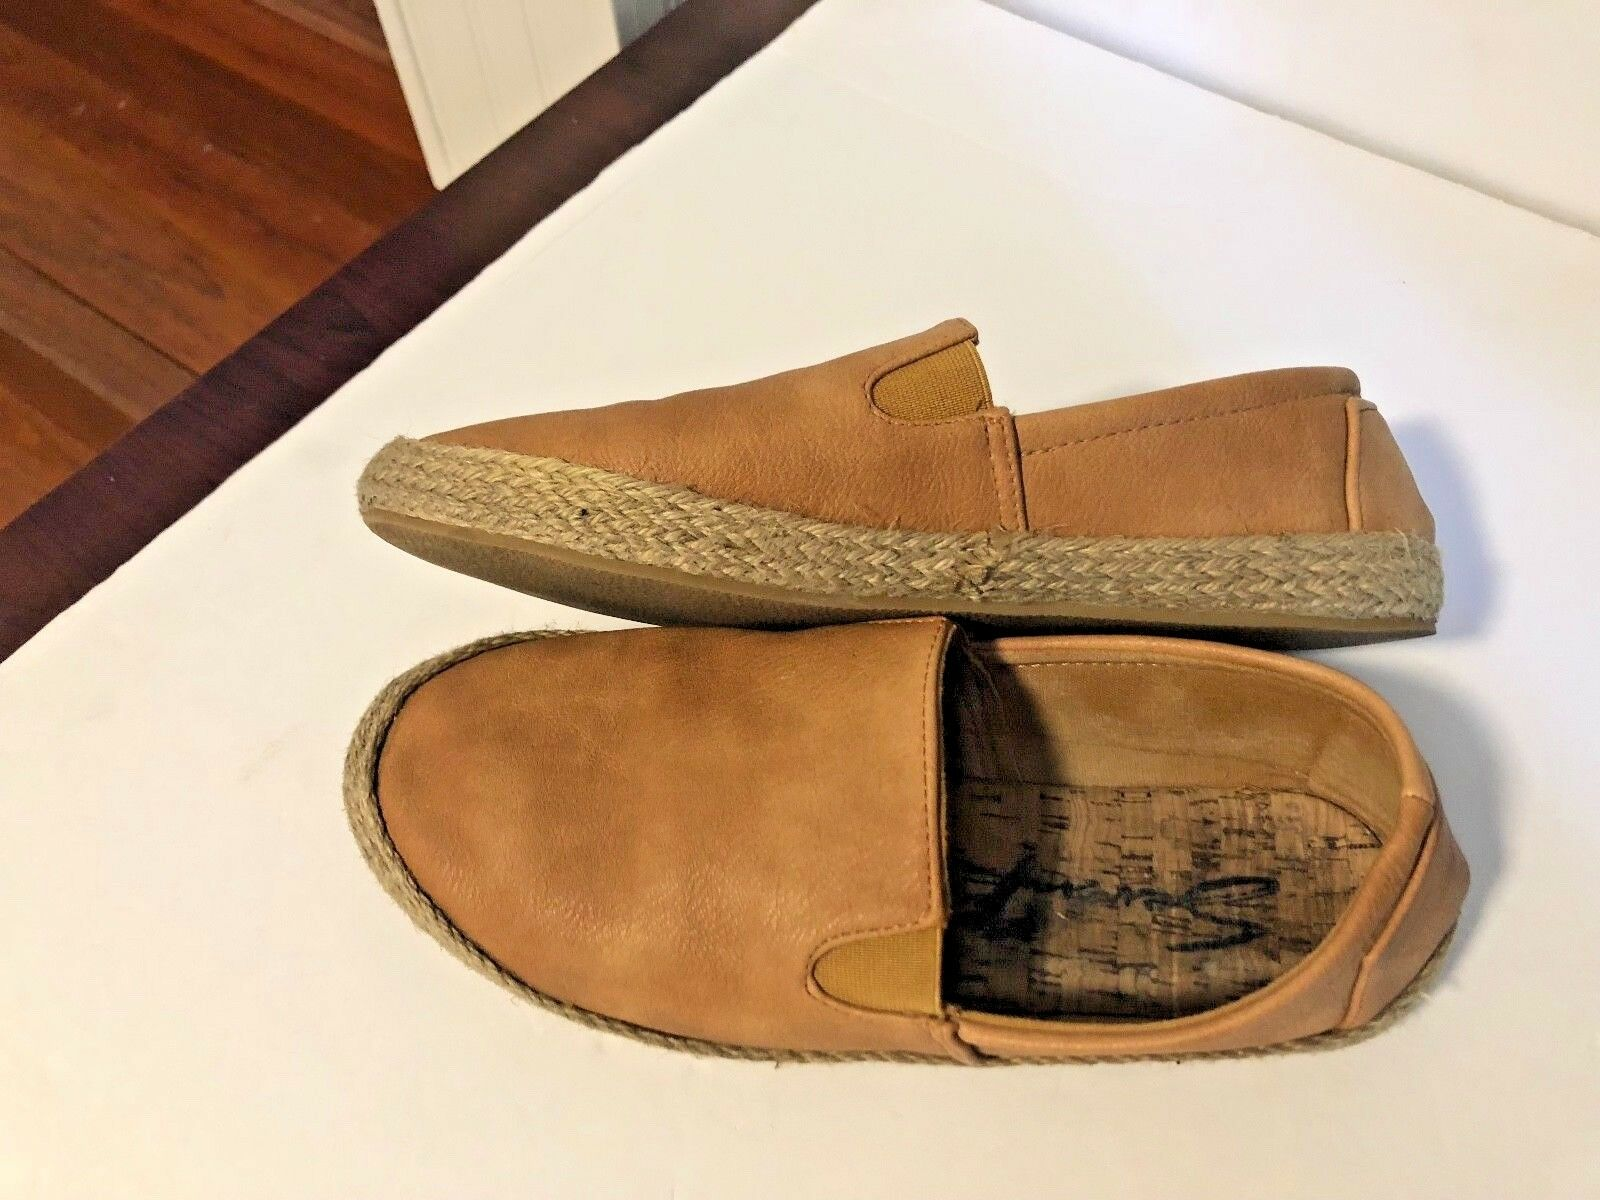 7 For All Mankind Mens Sz 10 Slip On Flat shoes Carmel wicker around sole